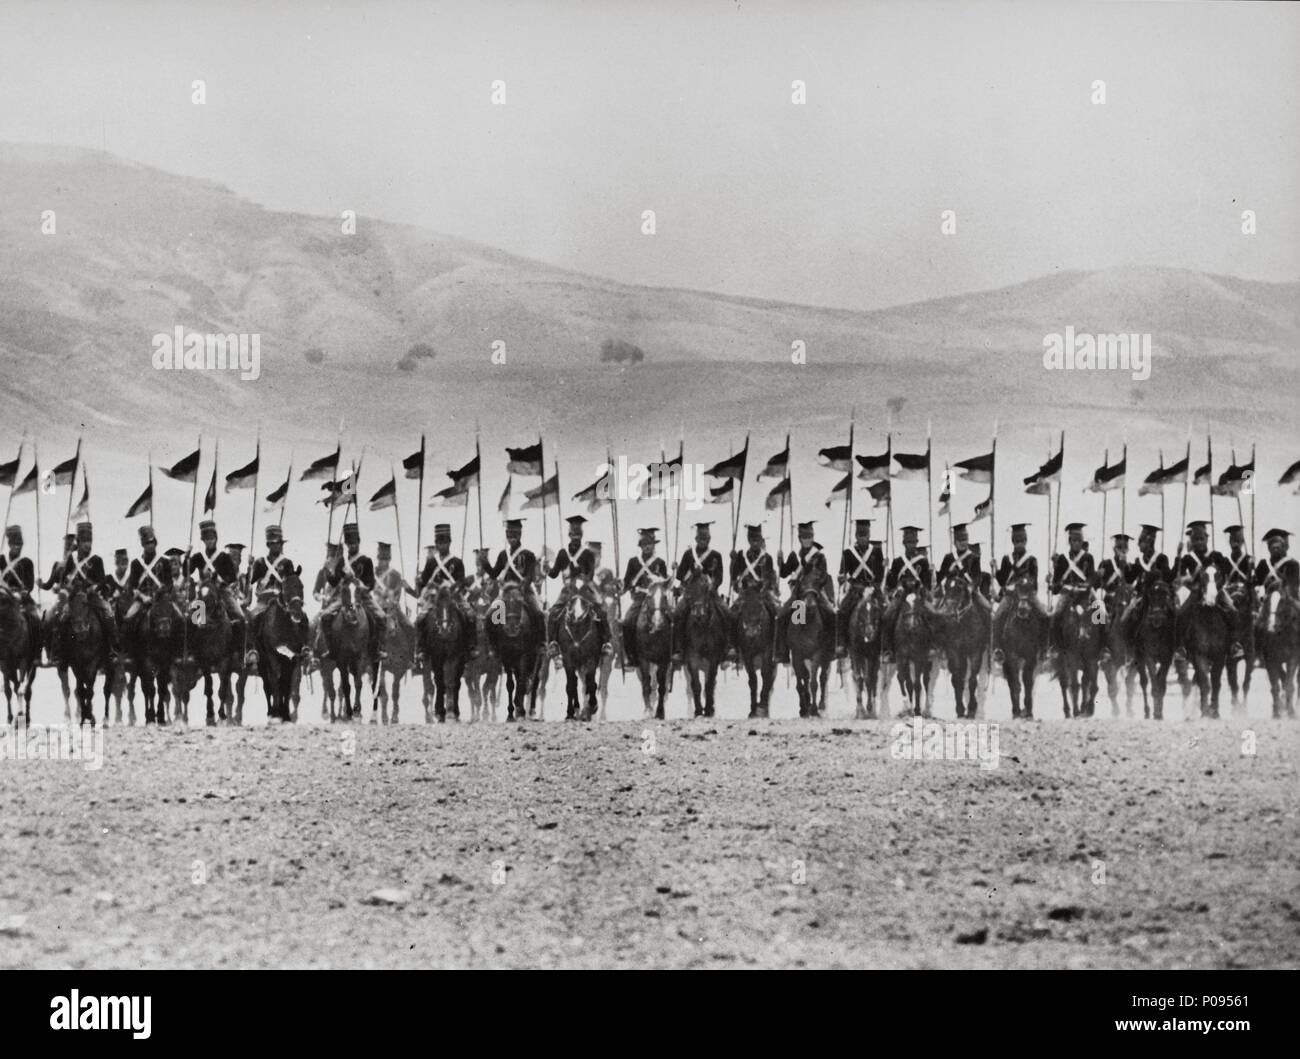 Original Film Title: THE CHARGE OF THE LIGHT BRIGADE.  English Title: THE CHARGE OF THE LIGHT BRIGADE.  Film Director: TONY RICHARDSON.  Year: 1968. Credit: UNITED ARTISTS/WOODFALL / Album - Stock Image